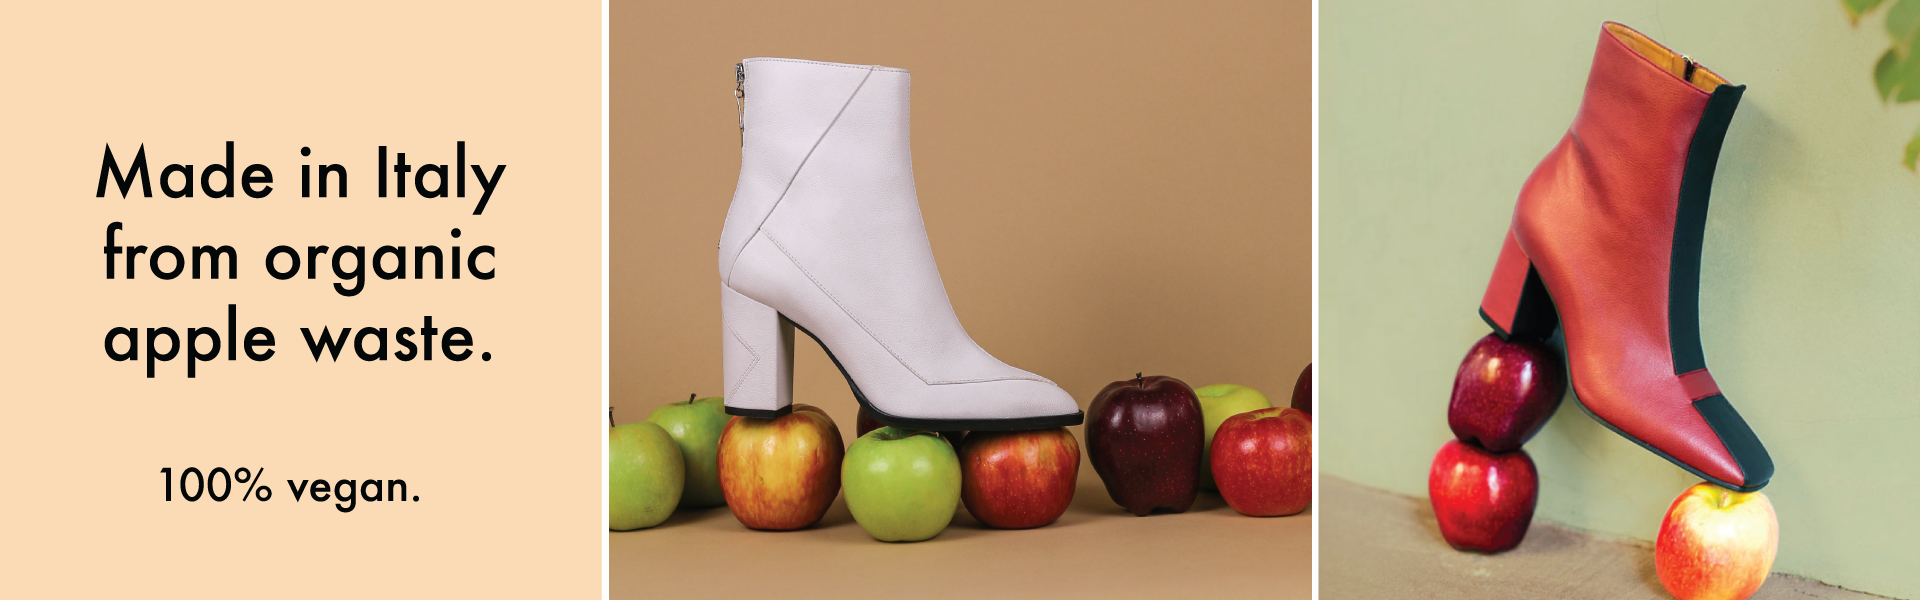 Apple leather made sustainably in Italy from organic apple waste. 100% vegan